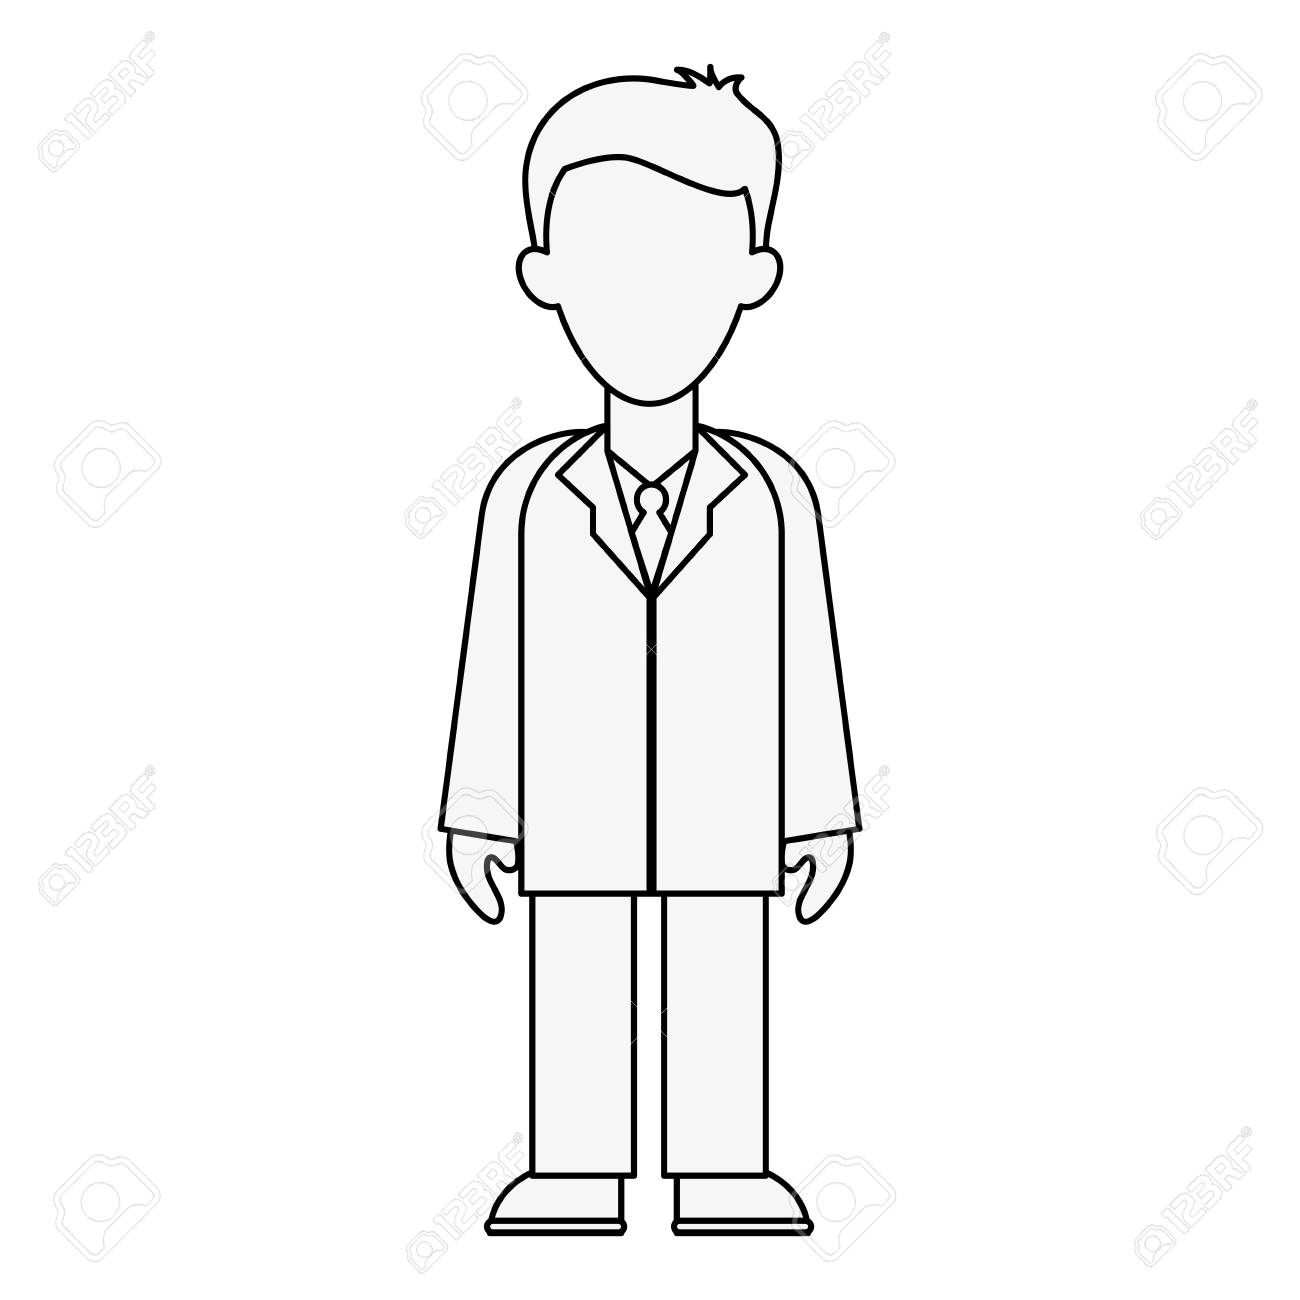 Doctor avatar full body icon image vector illustration design